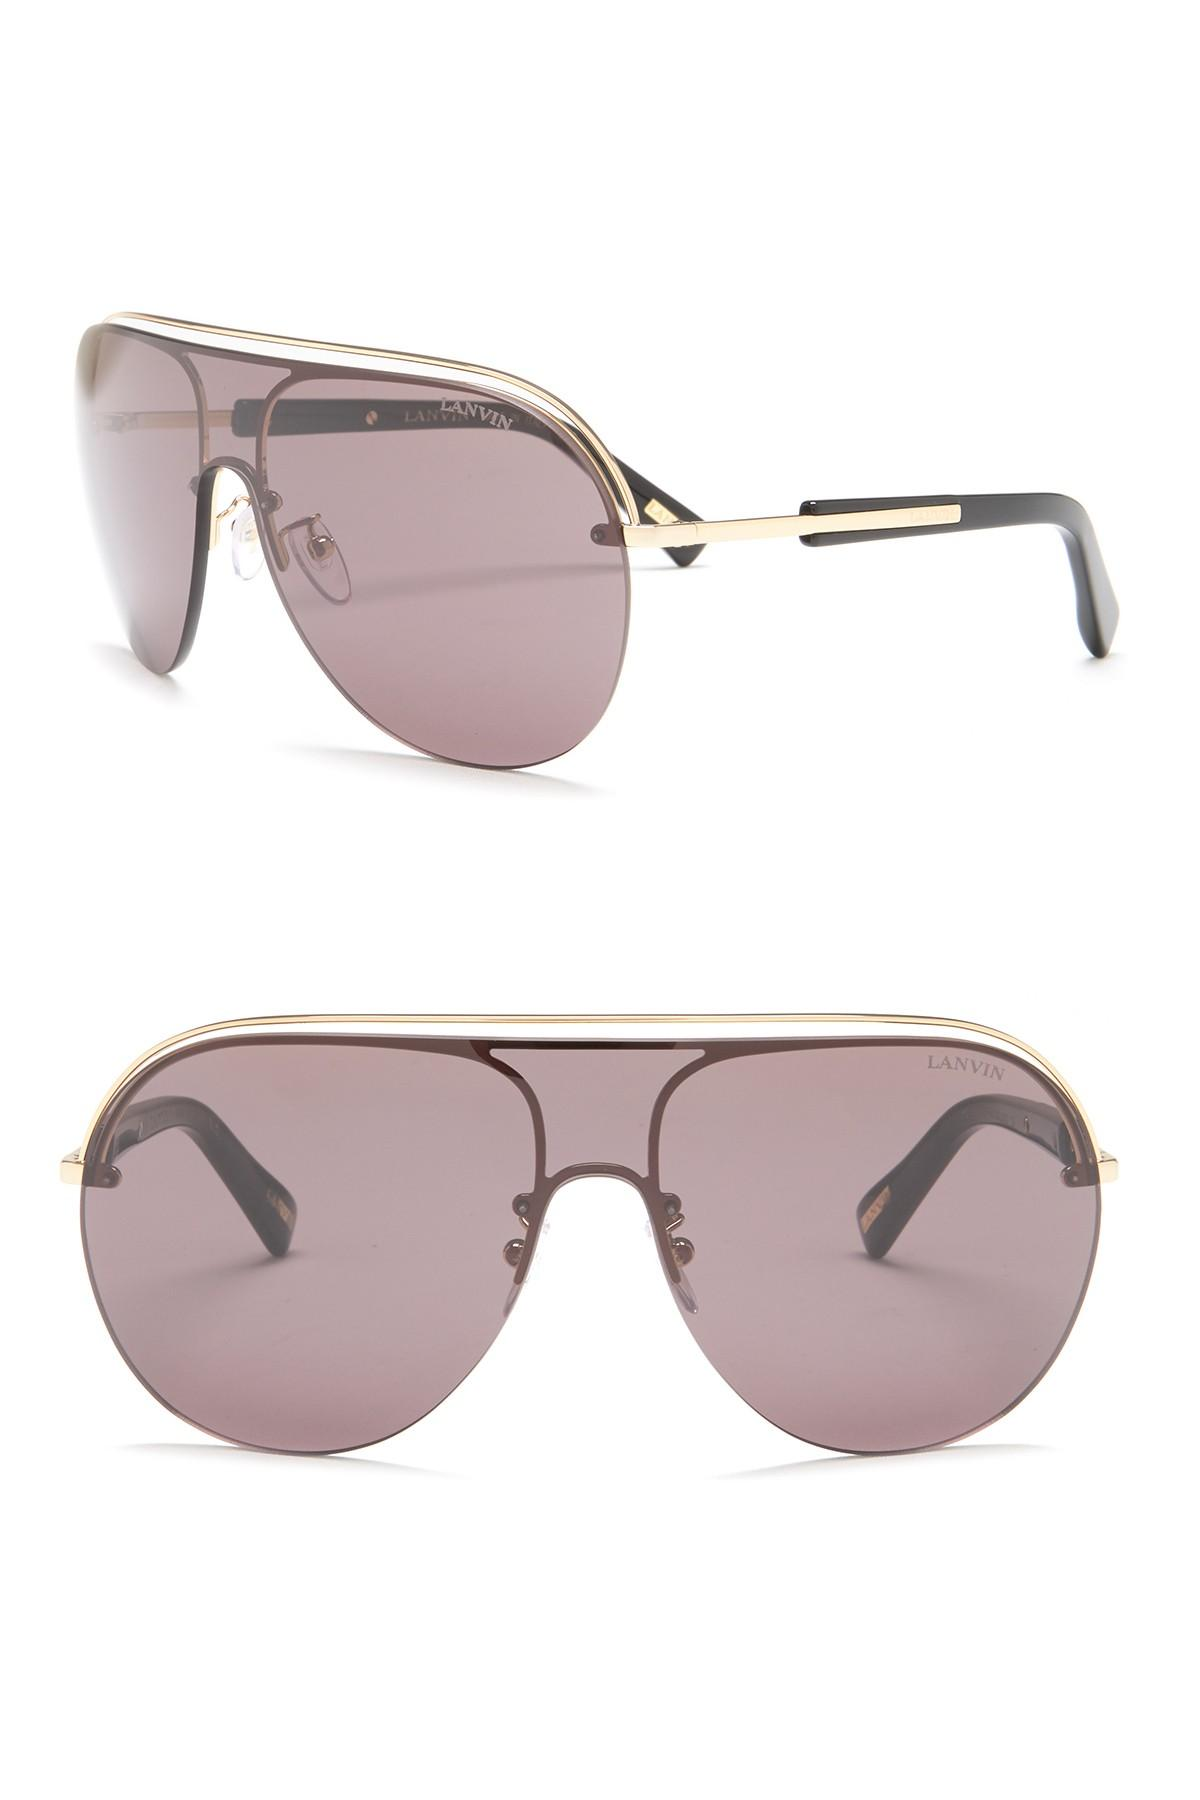 cbb1fc354ac ... Acetate Shield Sunglasses - Lyst. View fullscreen